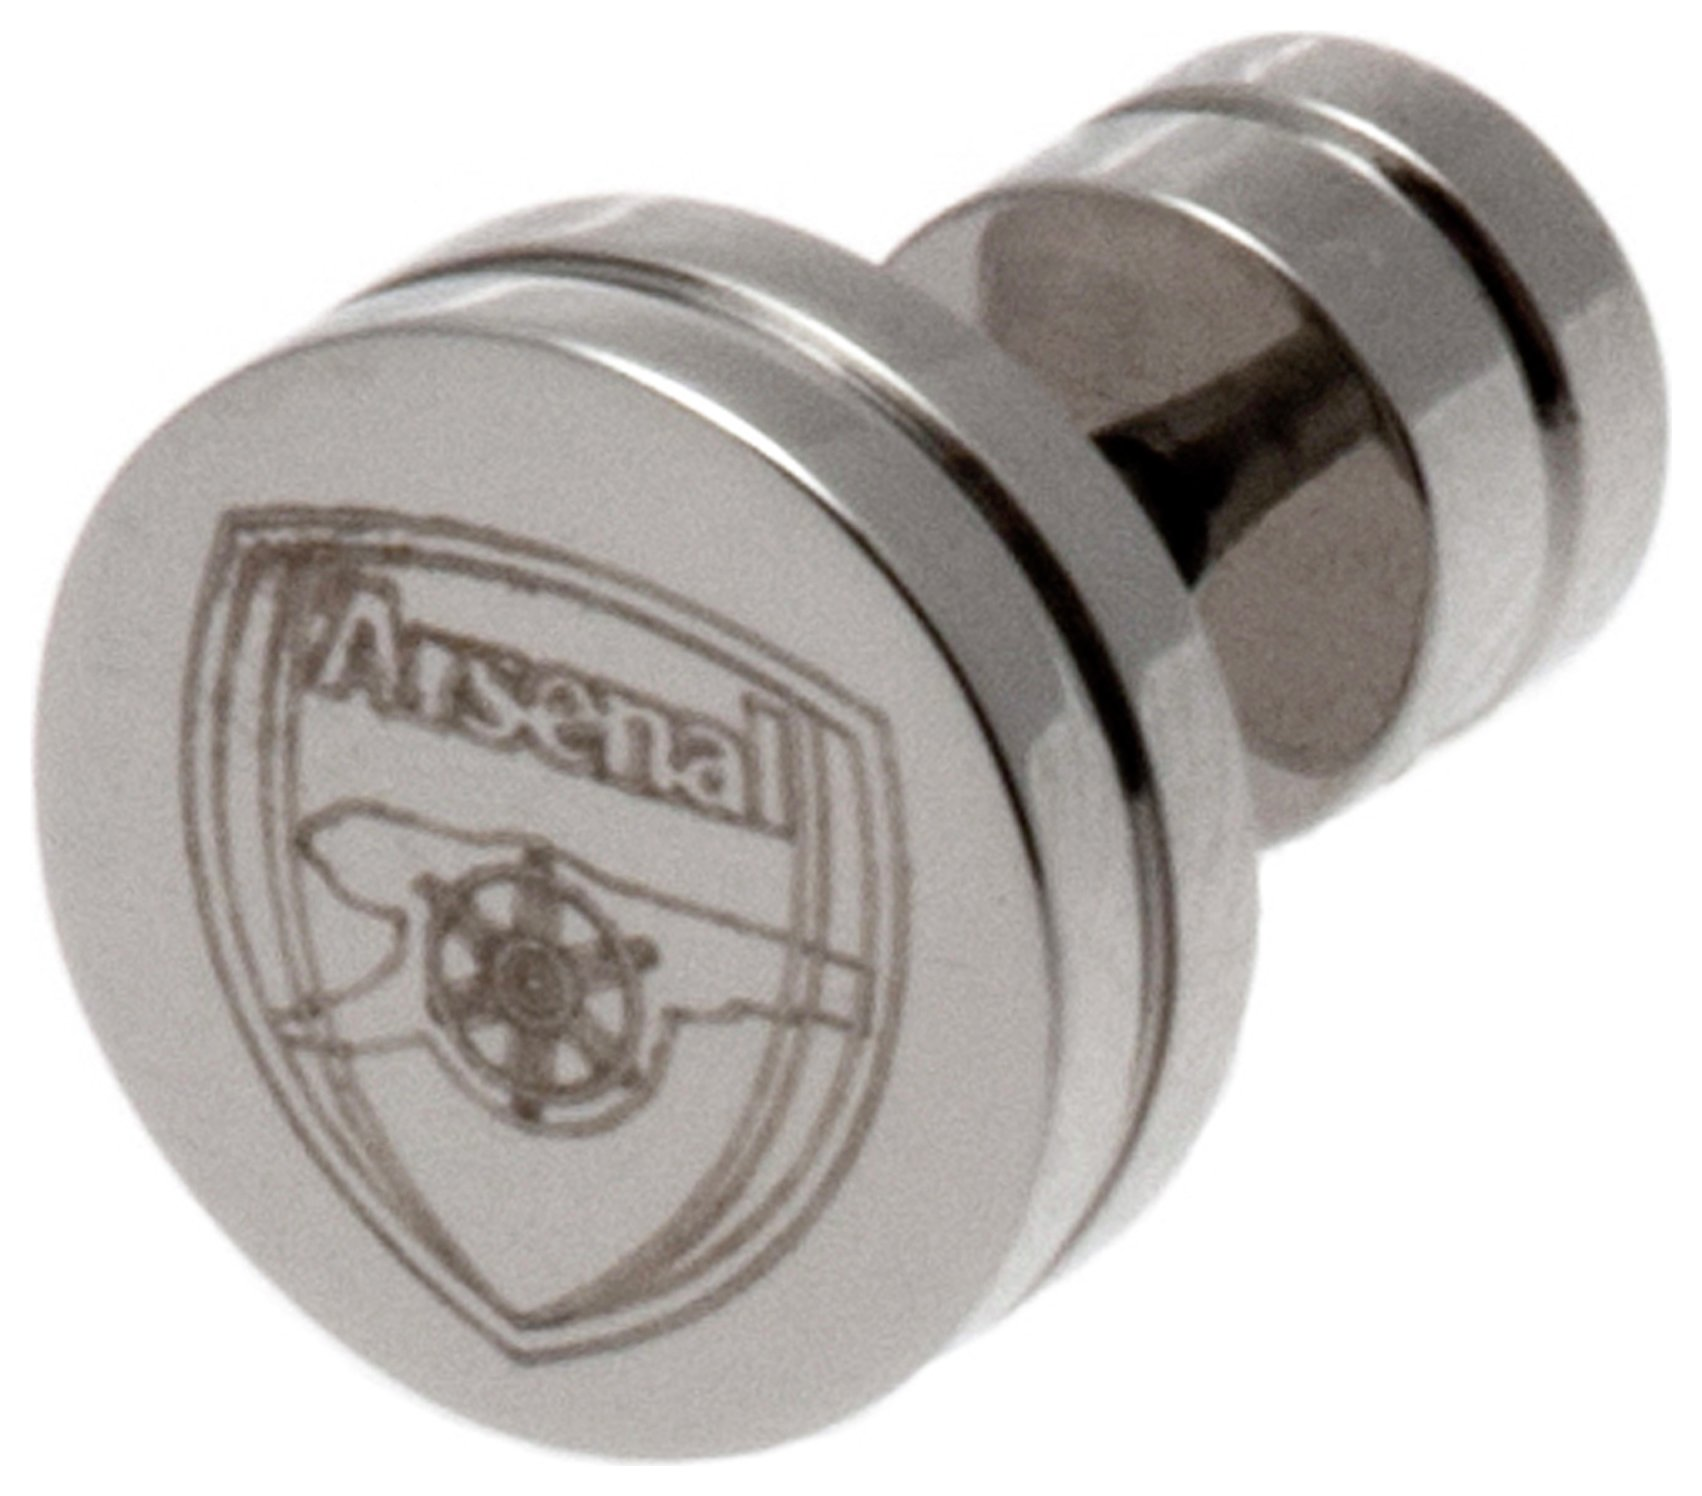 Image of Stainless Steel Arsenal Crest Stud Earring.